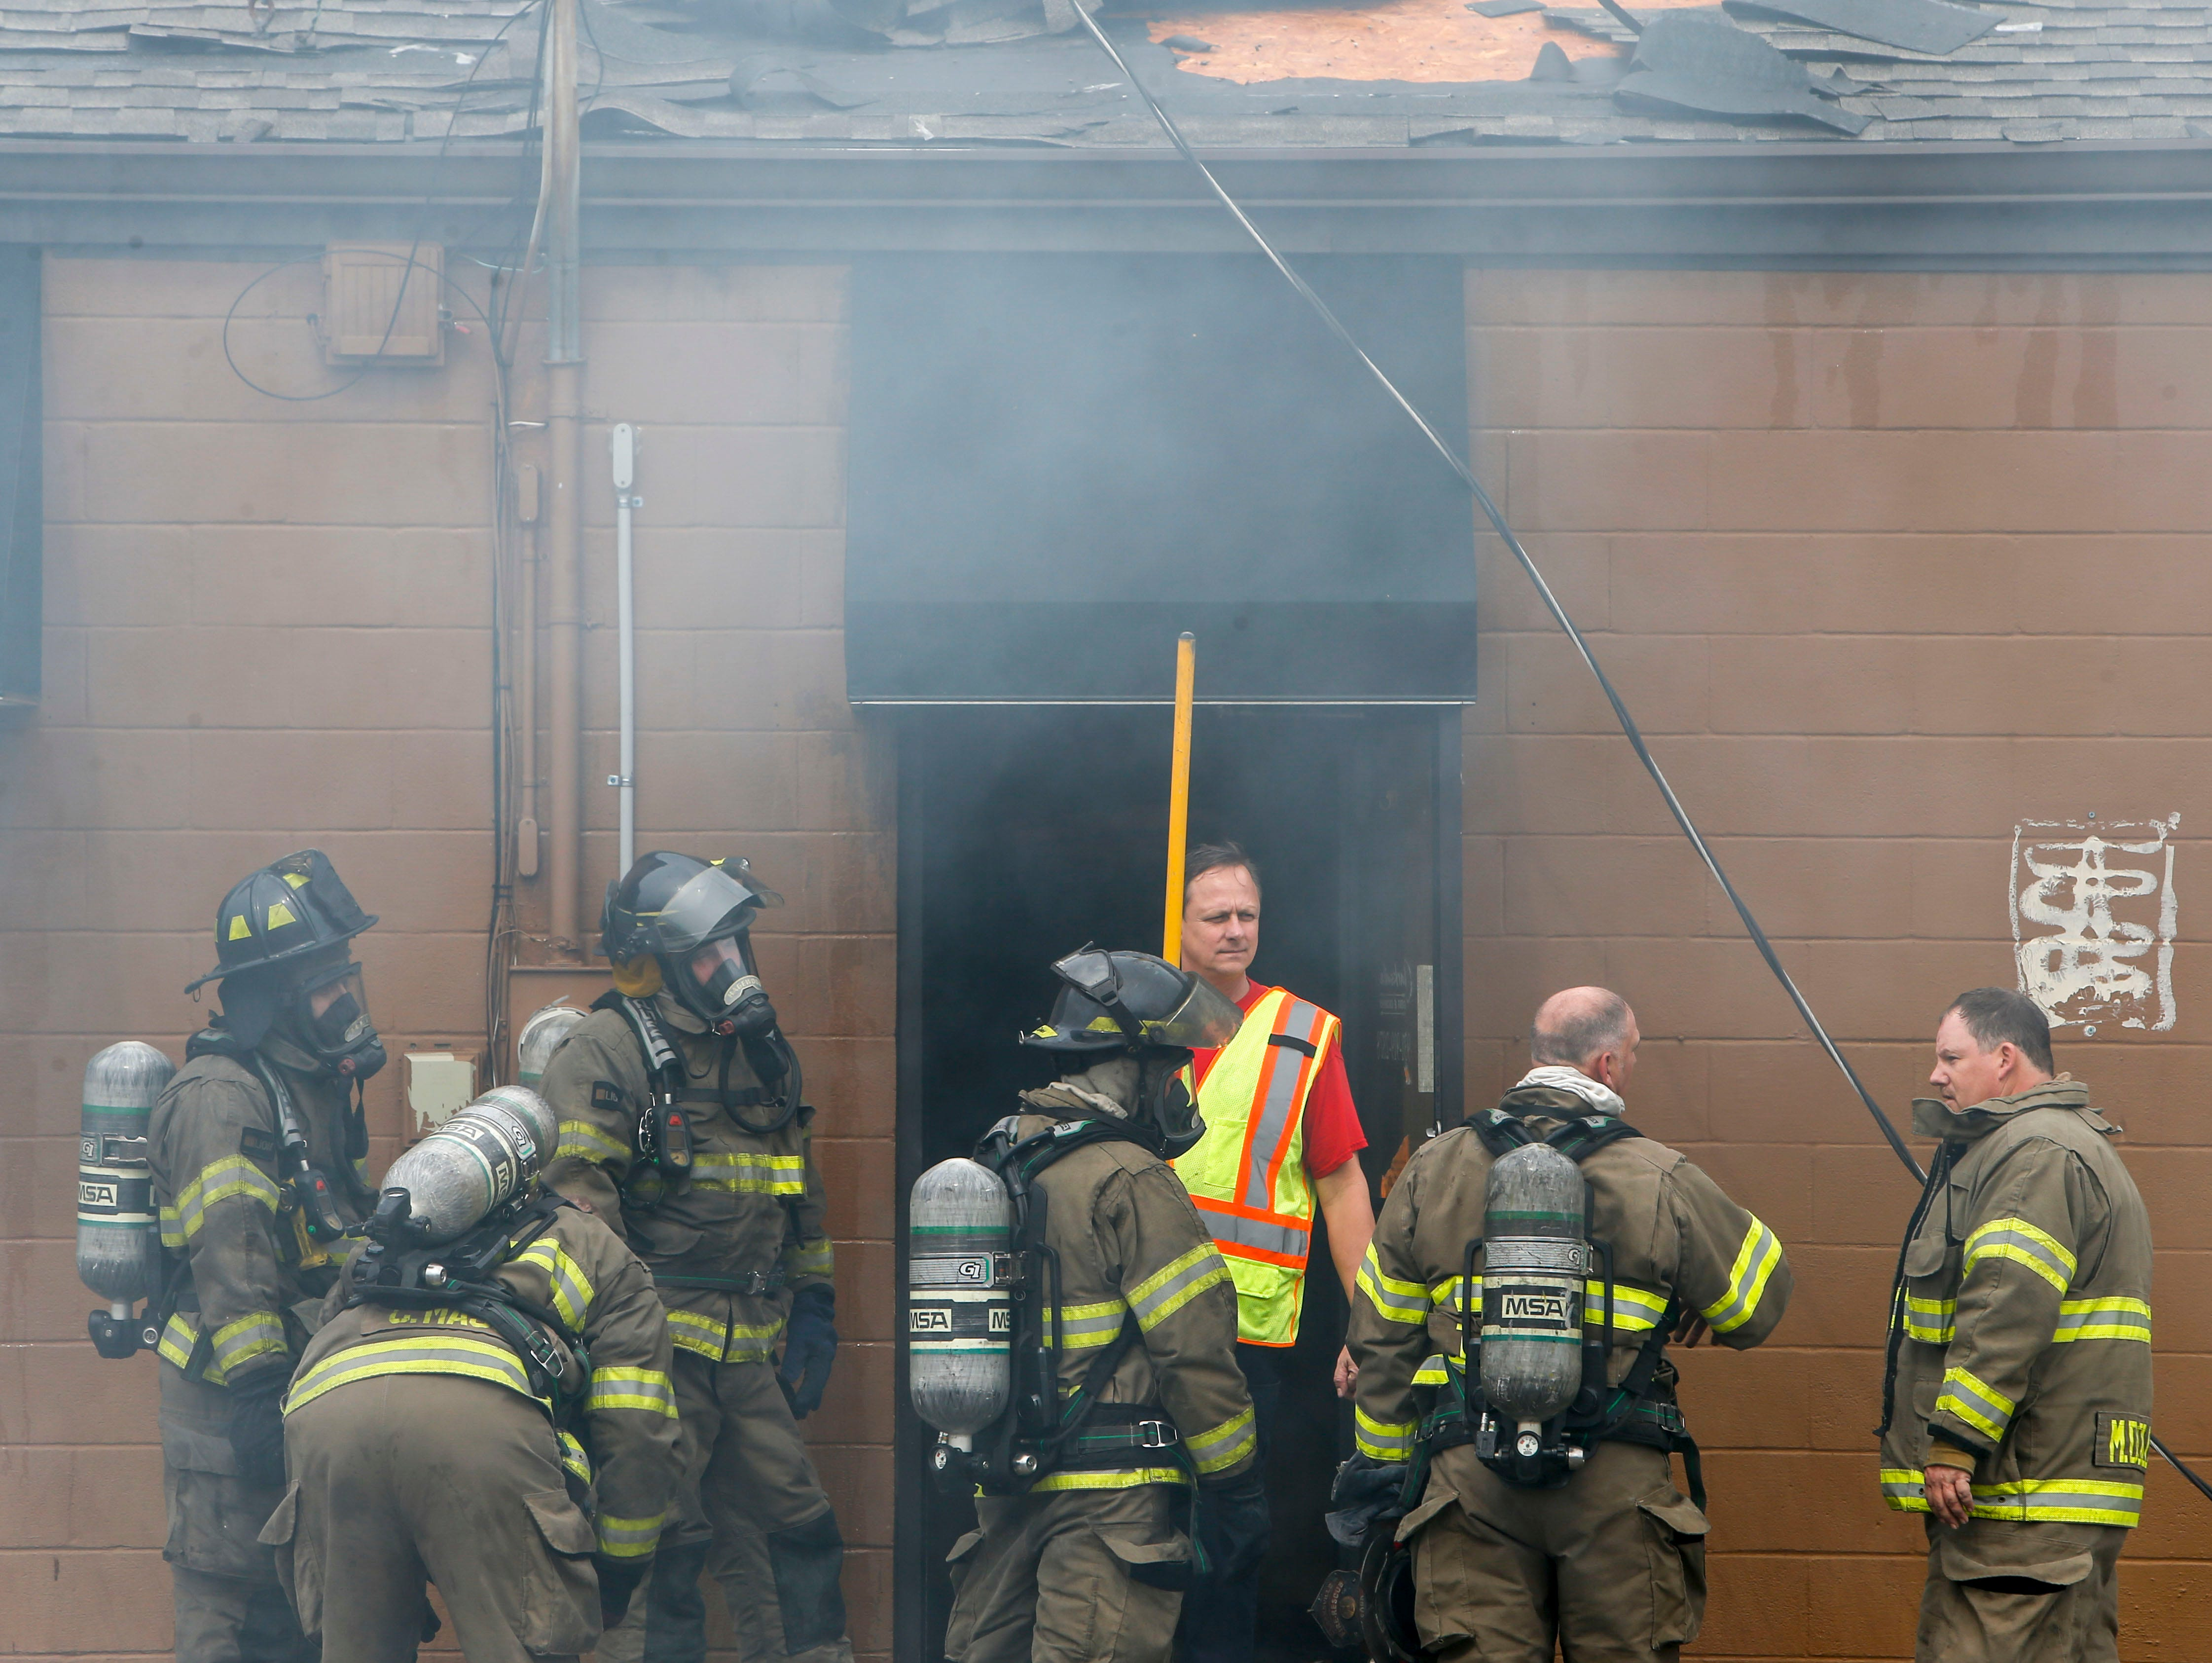 Clarksville Fire Rescue responders gather at the doorway of the shooting range before moving in for another sweep at Clarksville Guns & Archery in Clarksville, Tenn., on Tuesday, March 12, 2019.